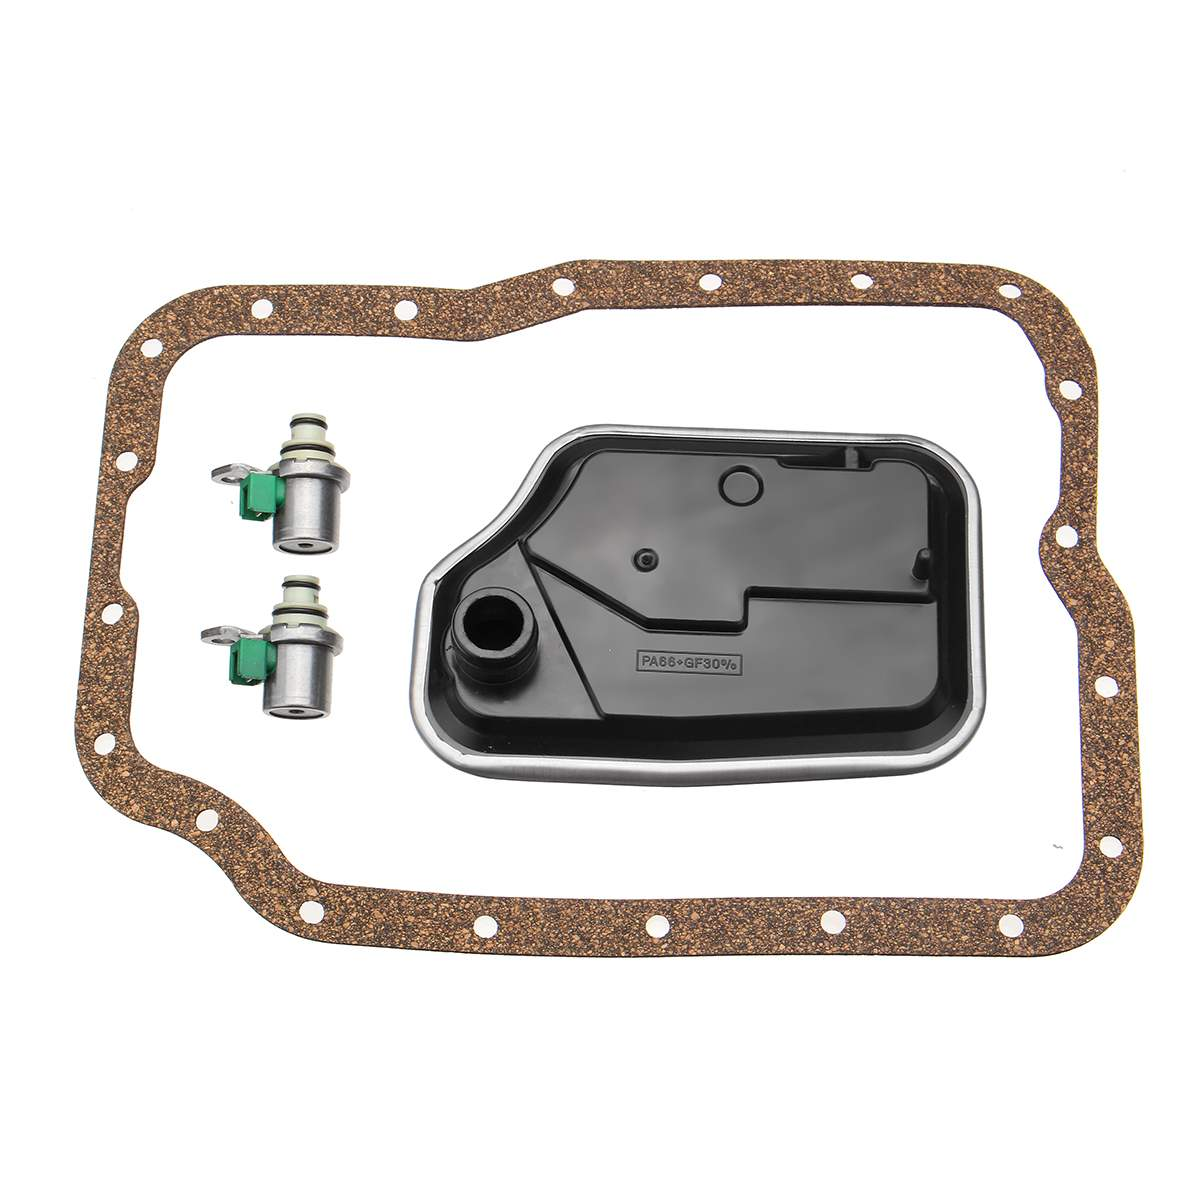 Transmission Shift Control Solenoid Replacement Kit For Ford For Mazda Products with the 4F27E & FN4A-EL Model 4-Speed 1999-onTransmission Shift Control Solenoid Replacement Kit For Ford For Mazda Products with the 4F27E & FN4A-EL Model 4-Speed 1999-on